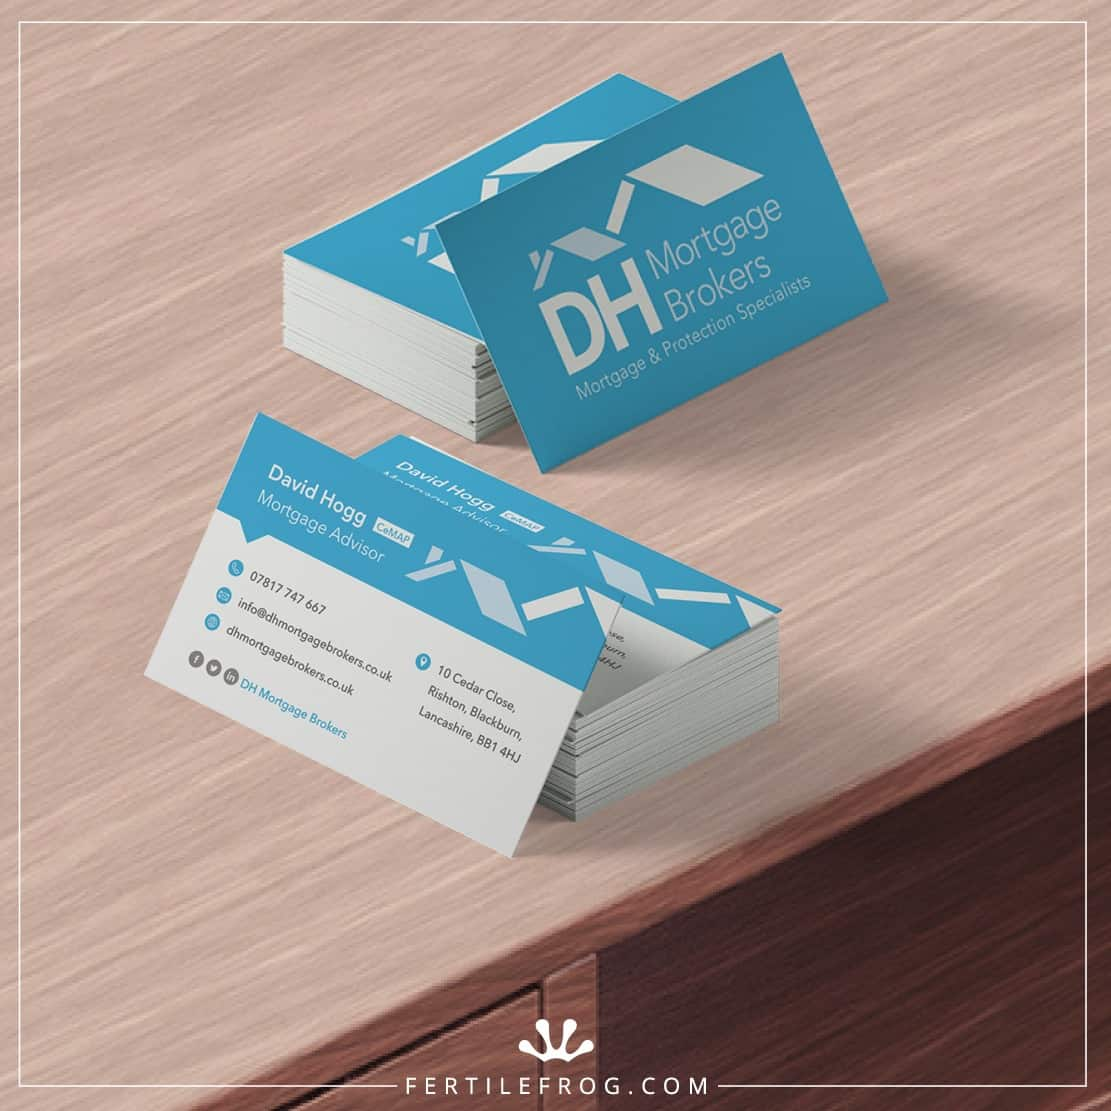 Mortgage Brokers Business Cards - DH Mortgage Brokers - Fertile Frog